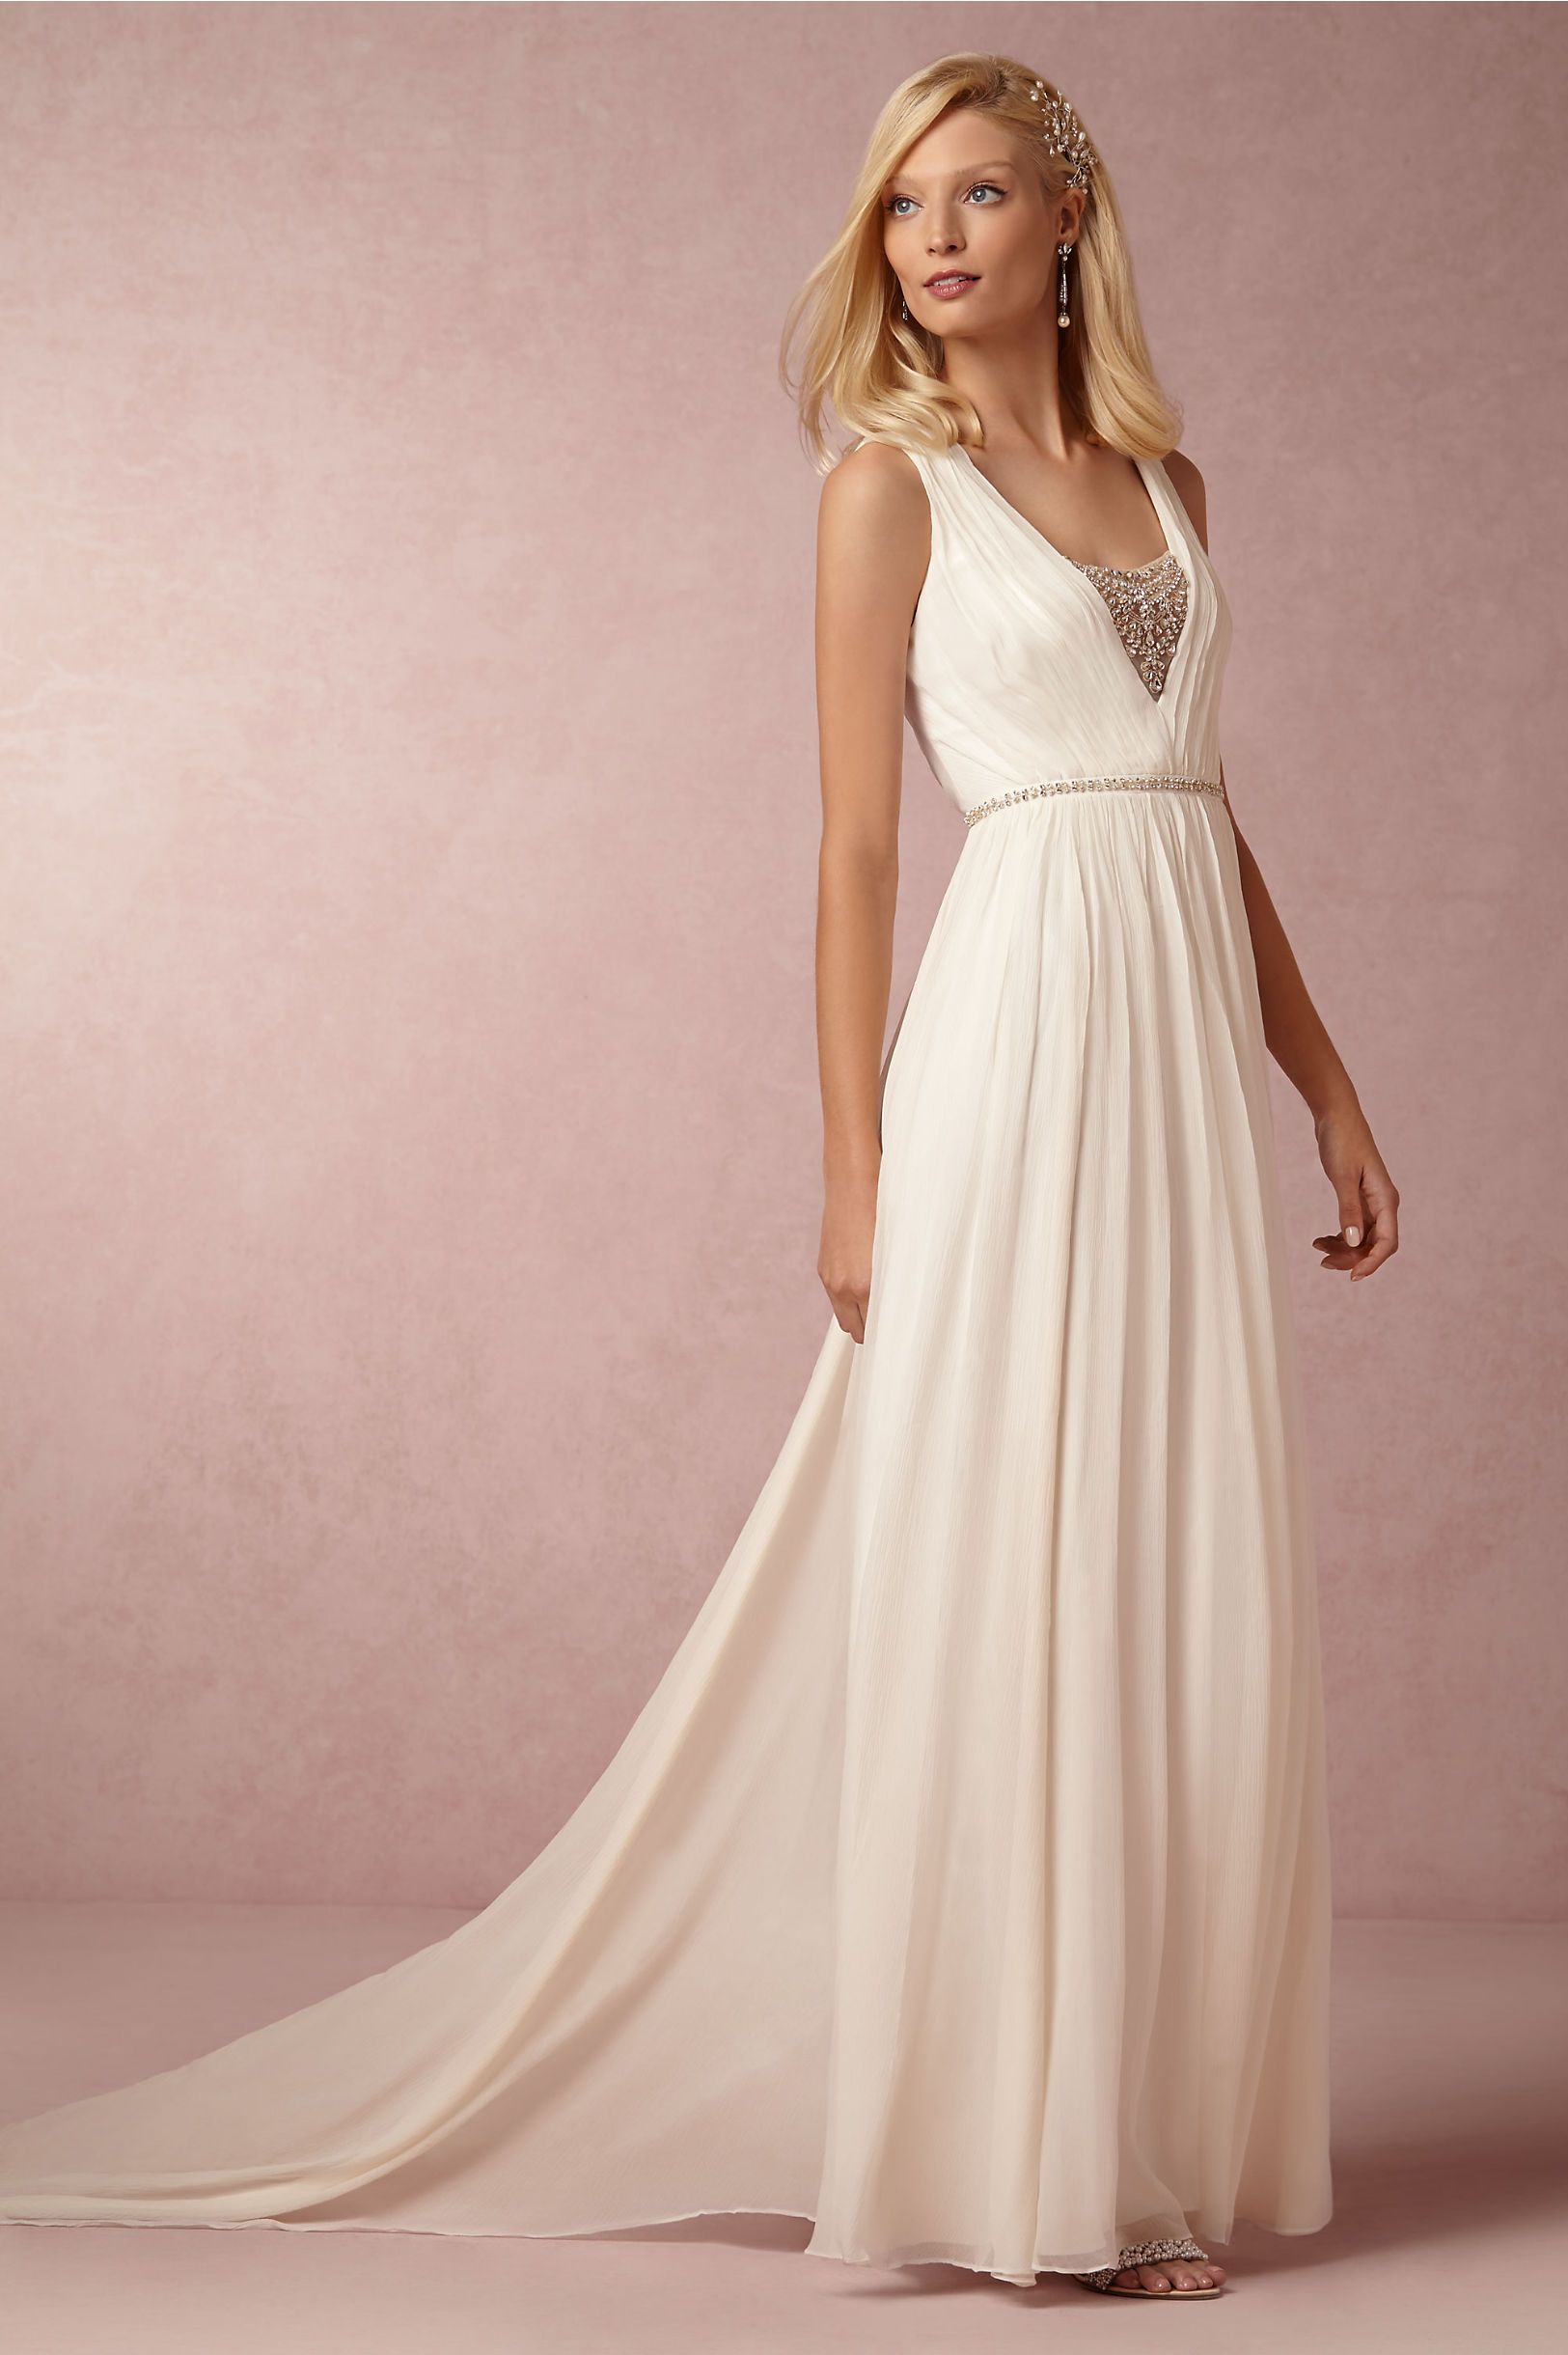 Millie Gown in Bride Wedding Dresses at BHLDN | LOVELY | Pinterest ...